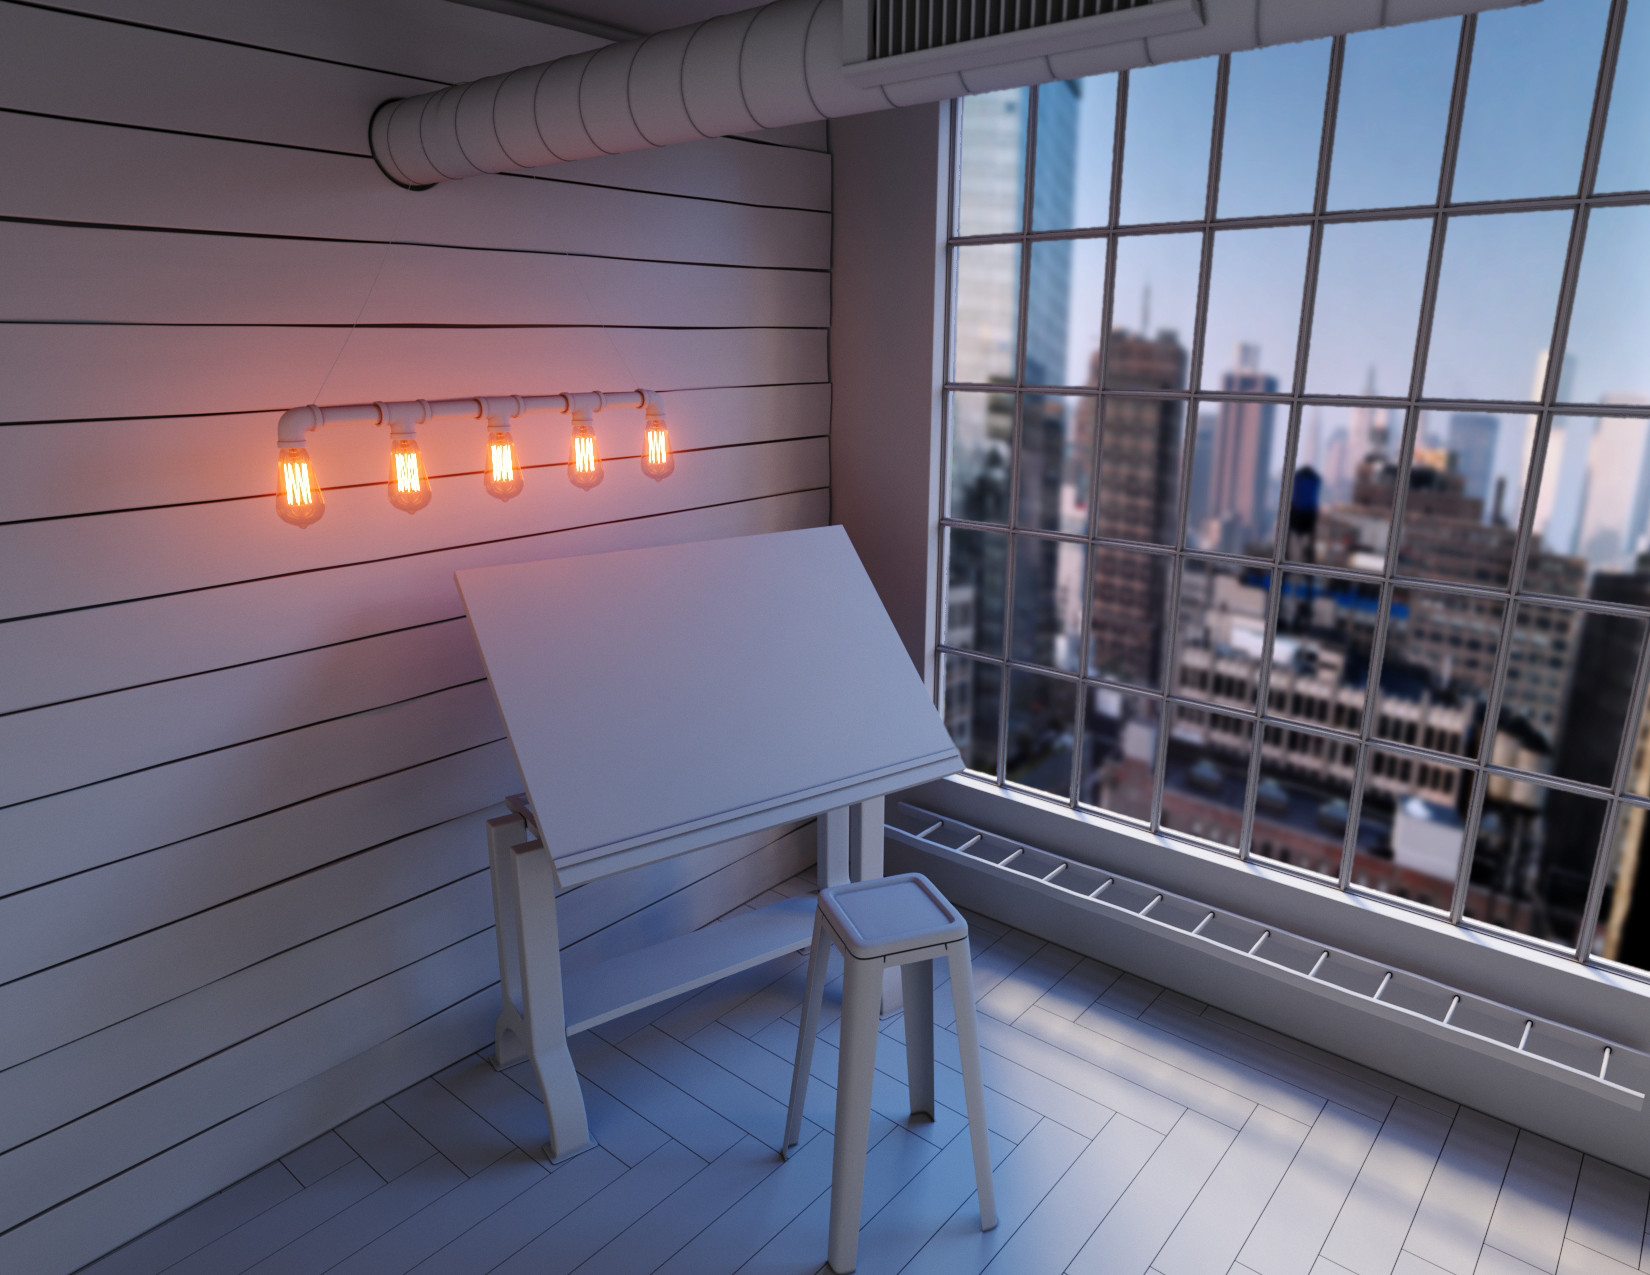 Lighting and Backplate Test.